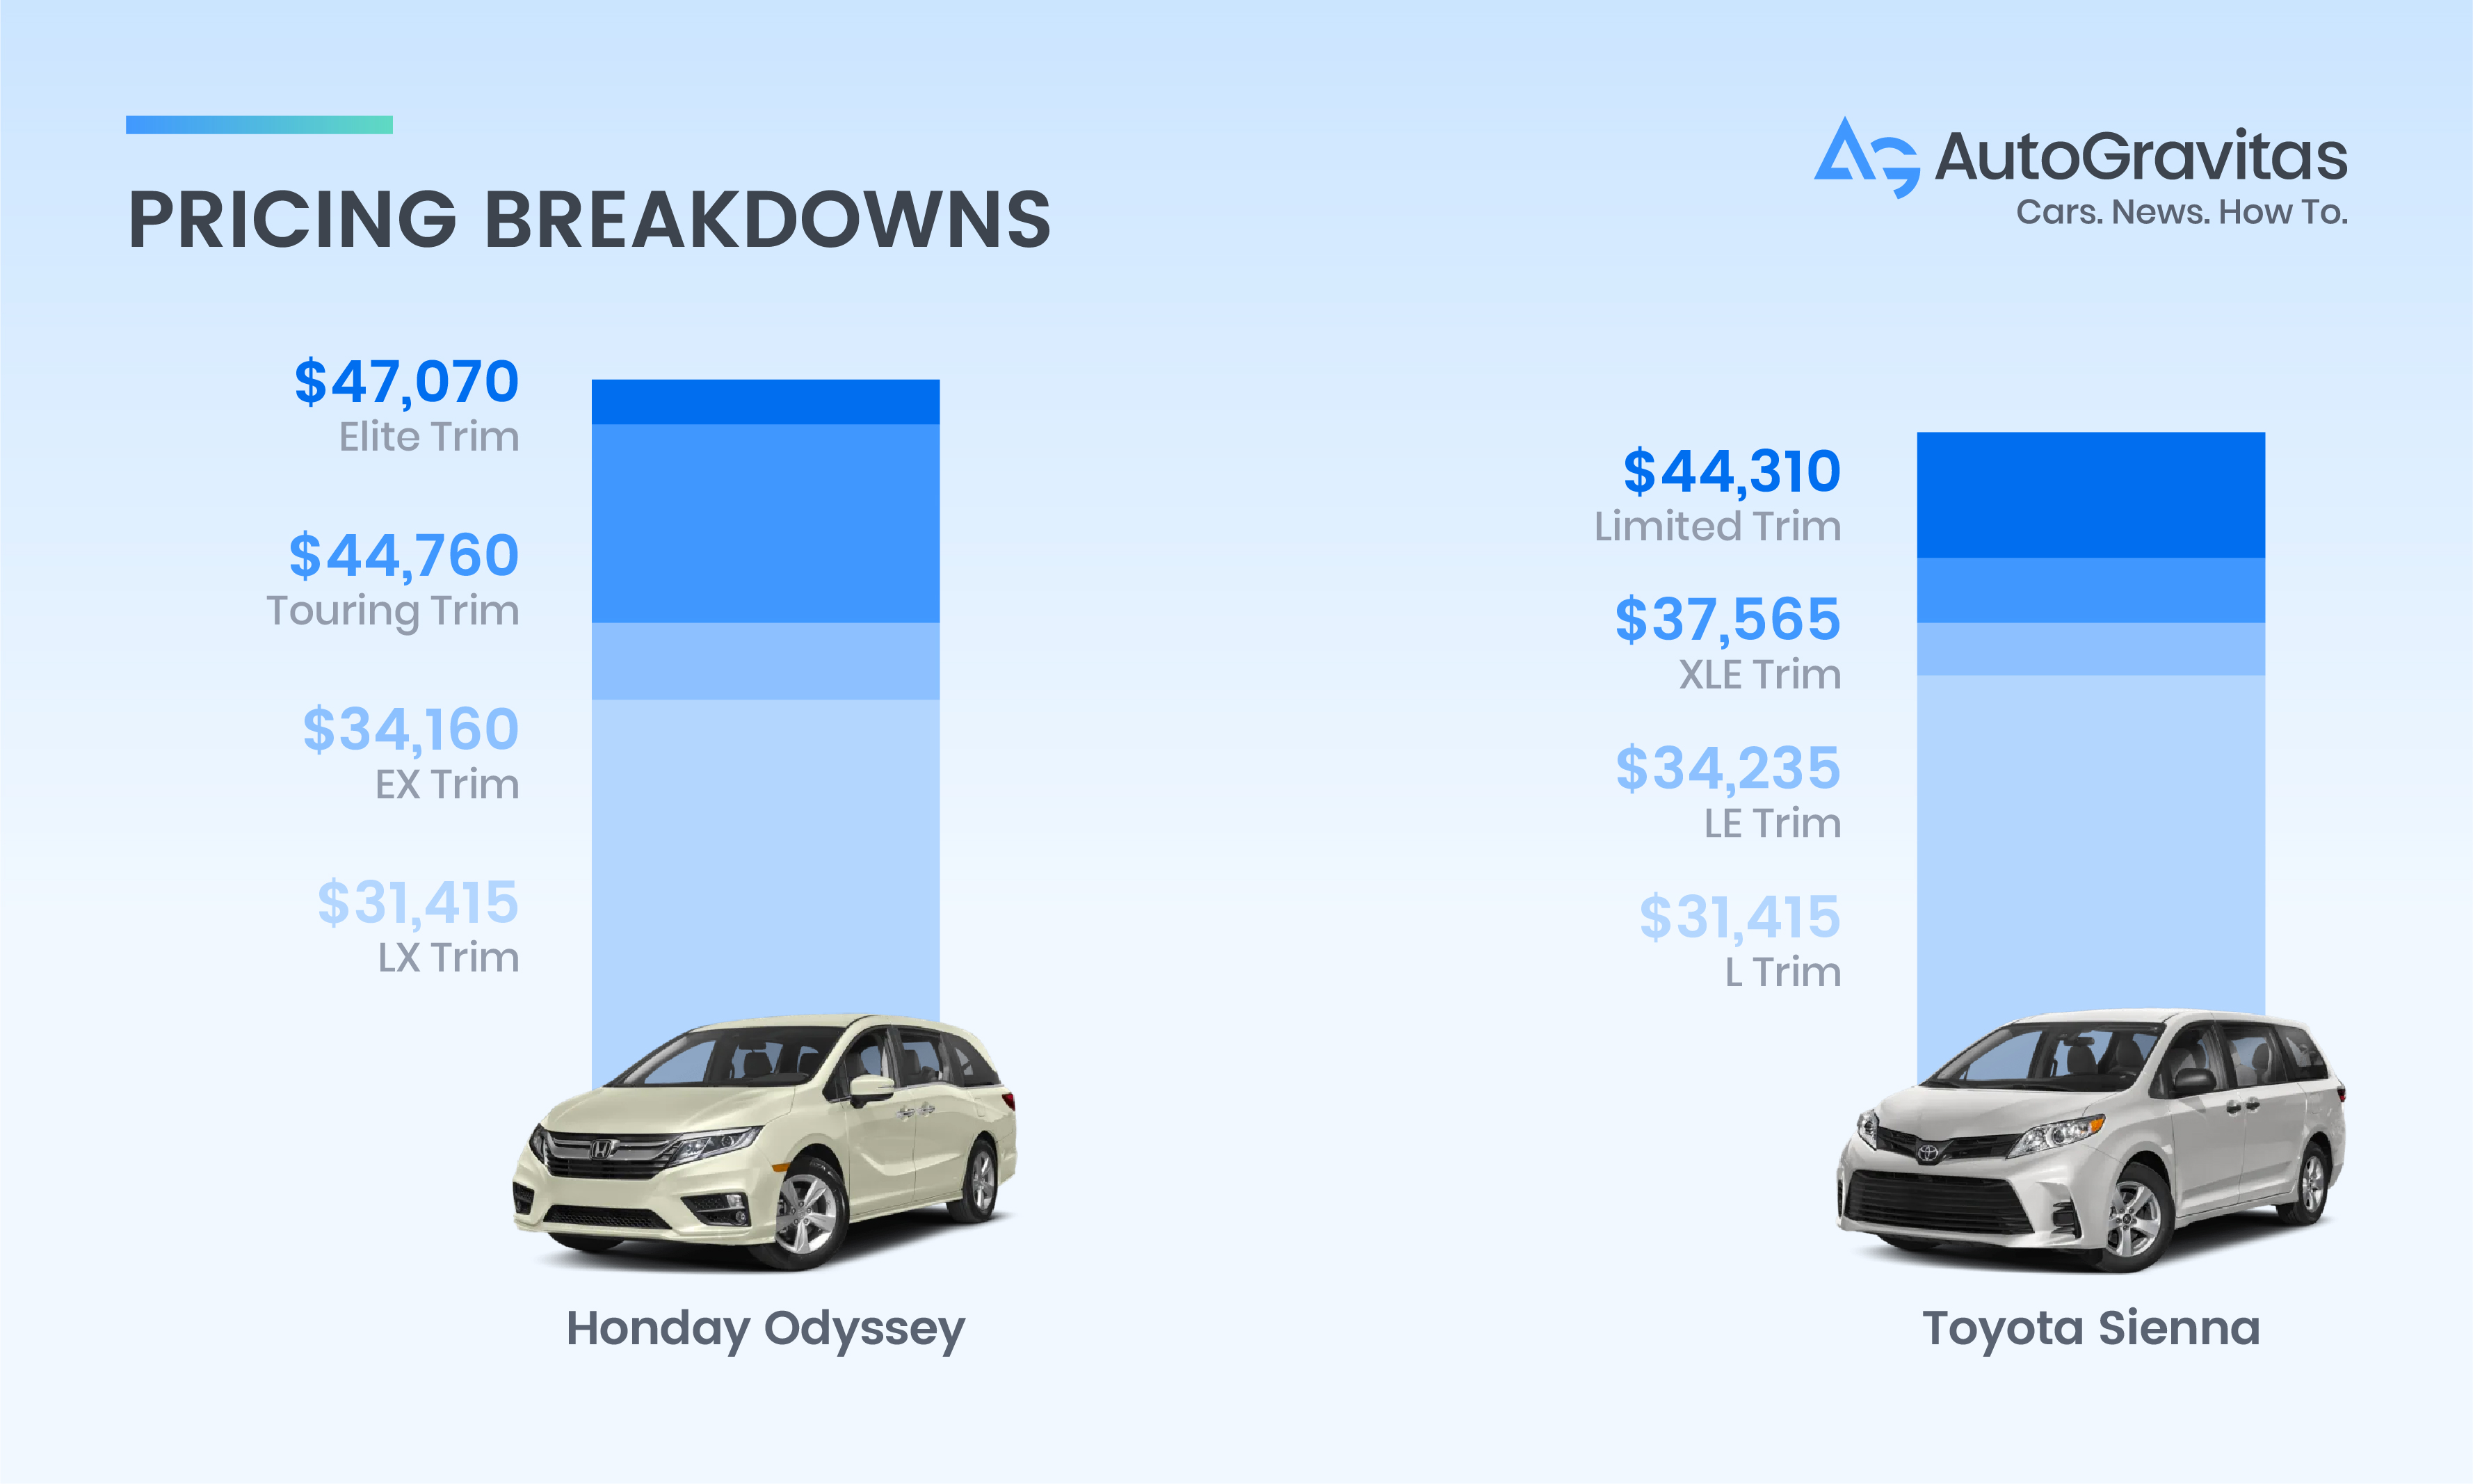 Odyssey vs Sienna price comparison graph